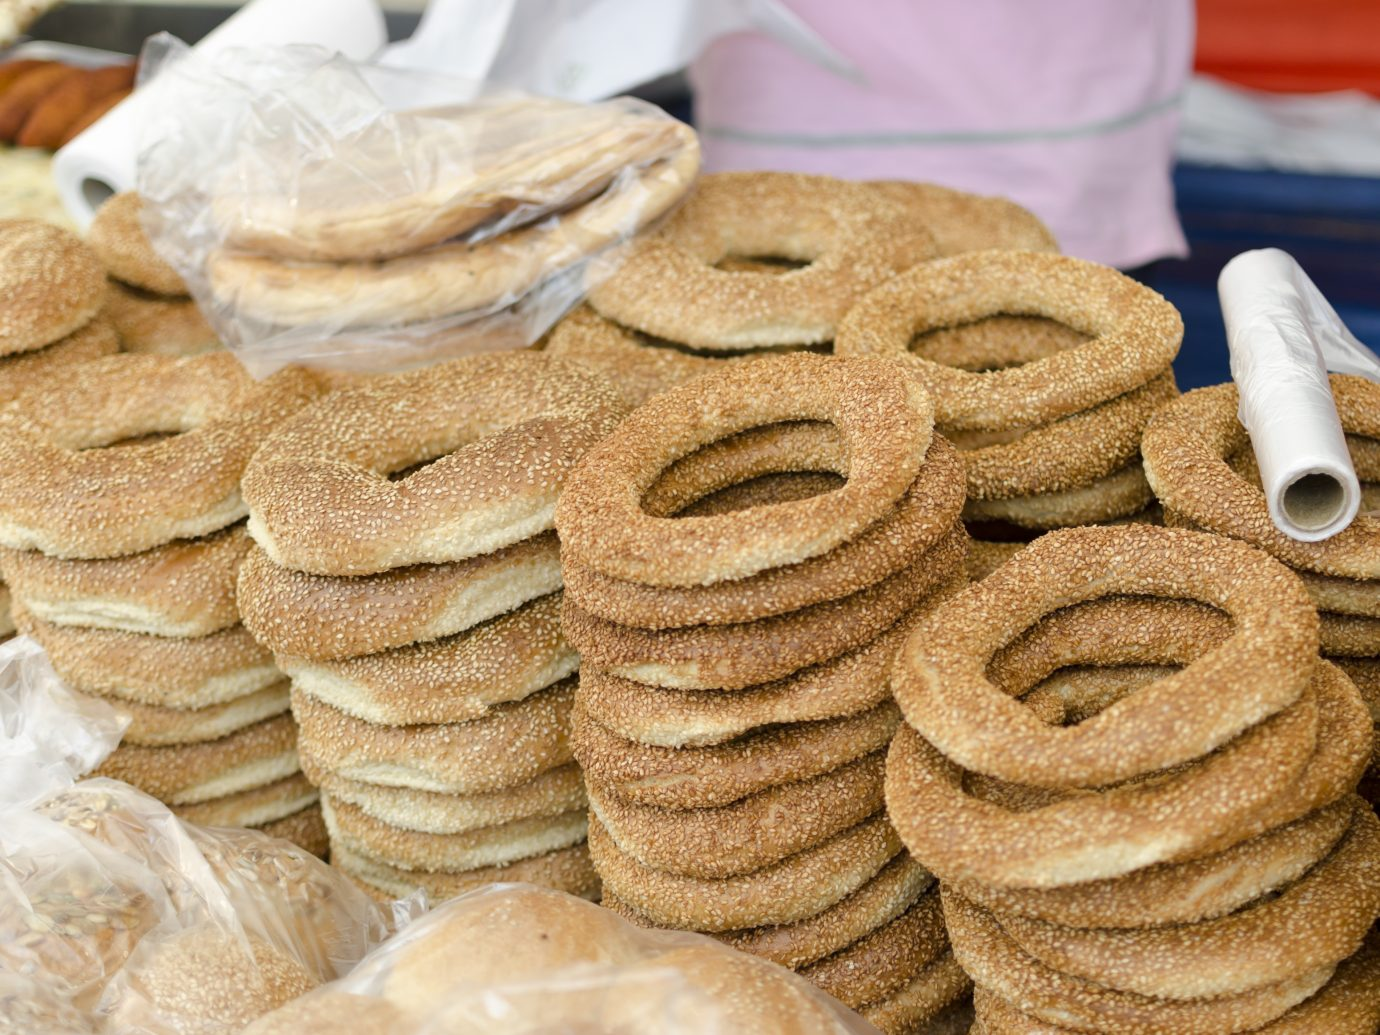 Turkish bagel (simit) sold on a marketplace in Kreuzberg, Berlin.